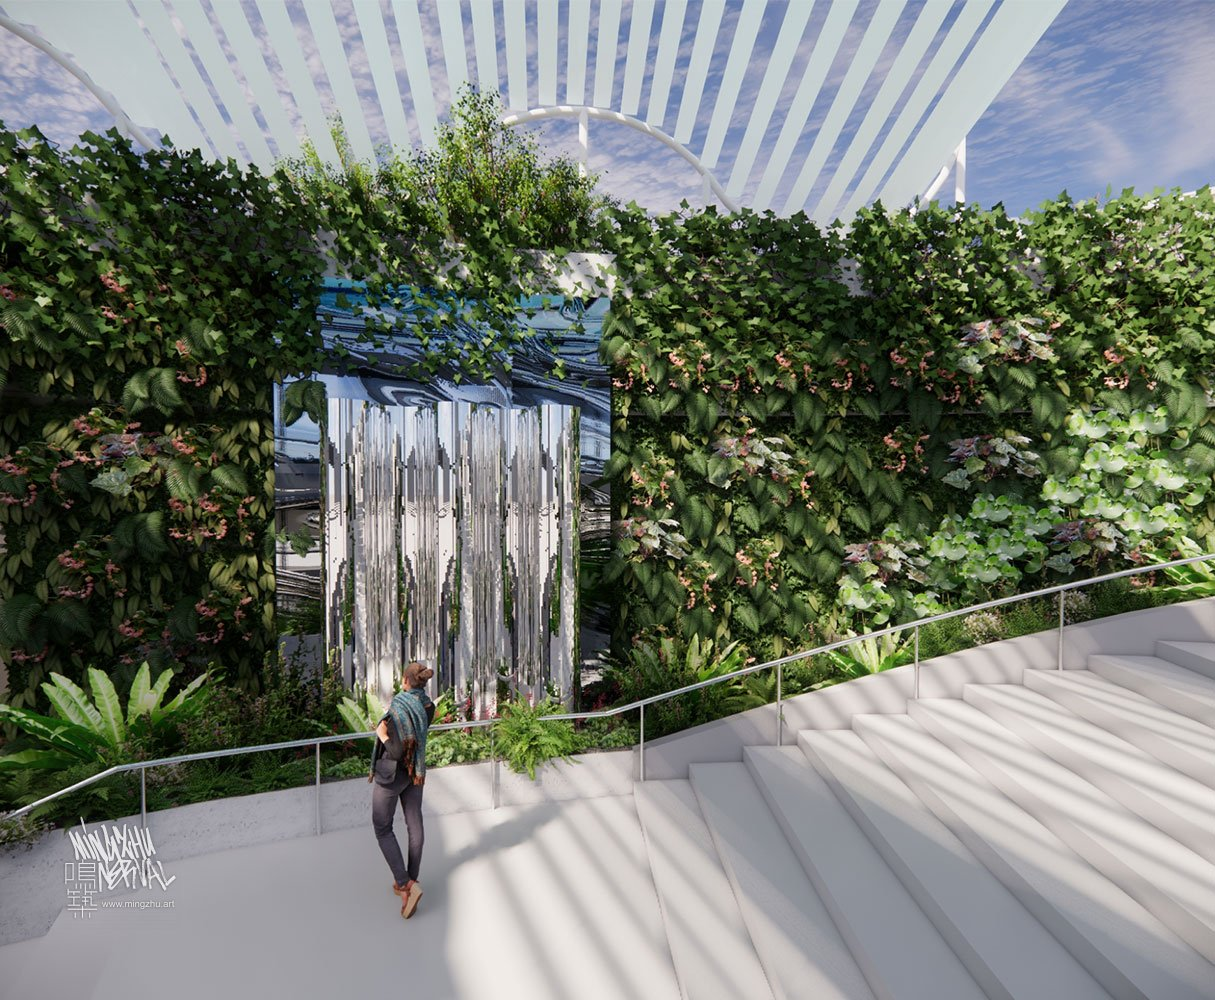 Mingzhu Nerval vertical living wall experts at Brookfield commercial plaza, Shanghai, 2021